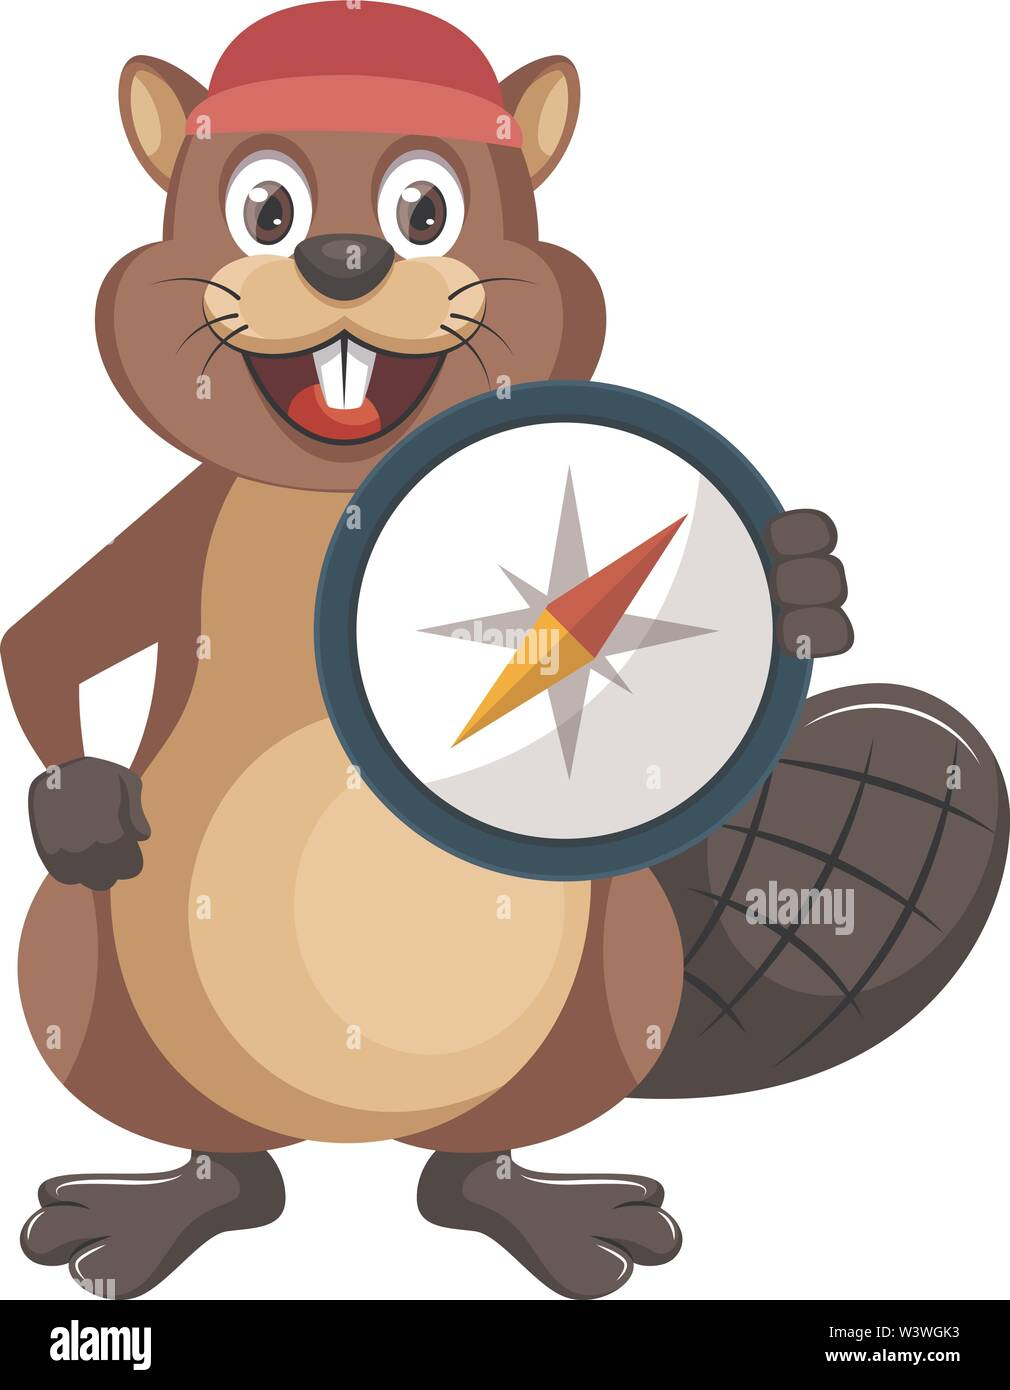 Beaver with compas, illustration, vector on white background. - Stock Image